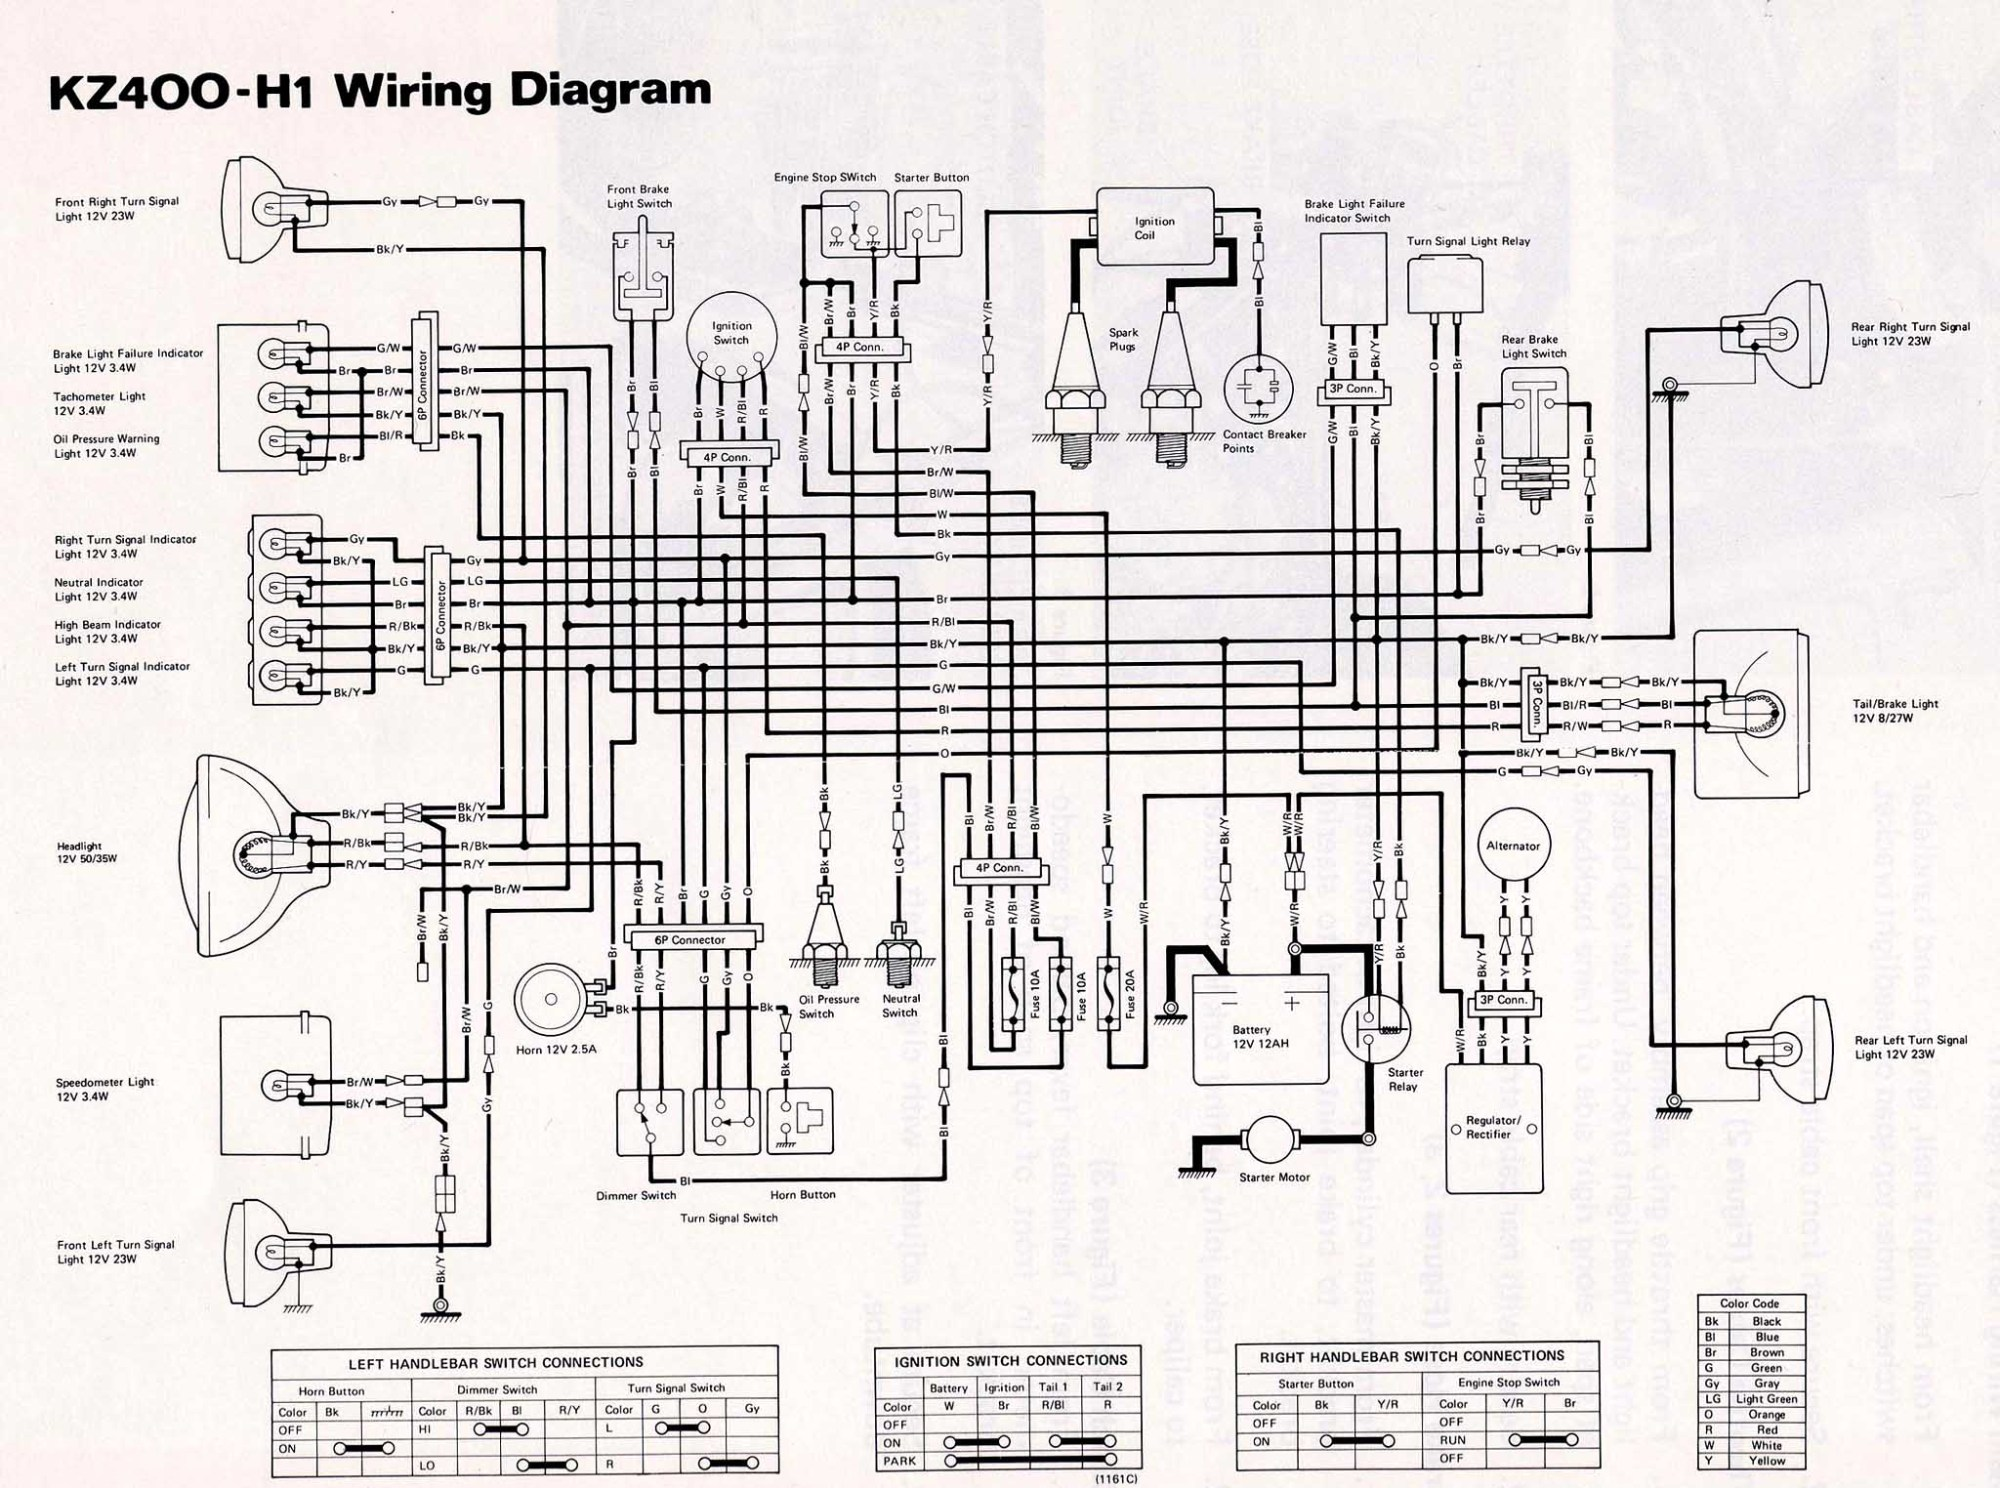 hight resolution of kz400 com 1975 kz400 wiring diagram sportster wiring diagram